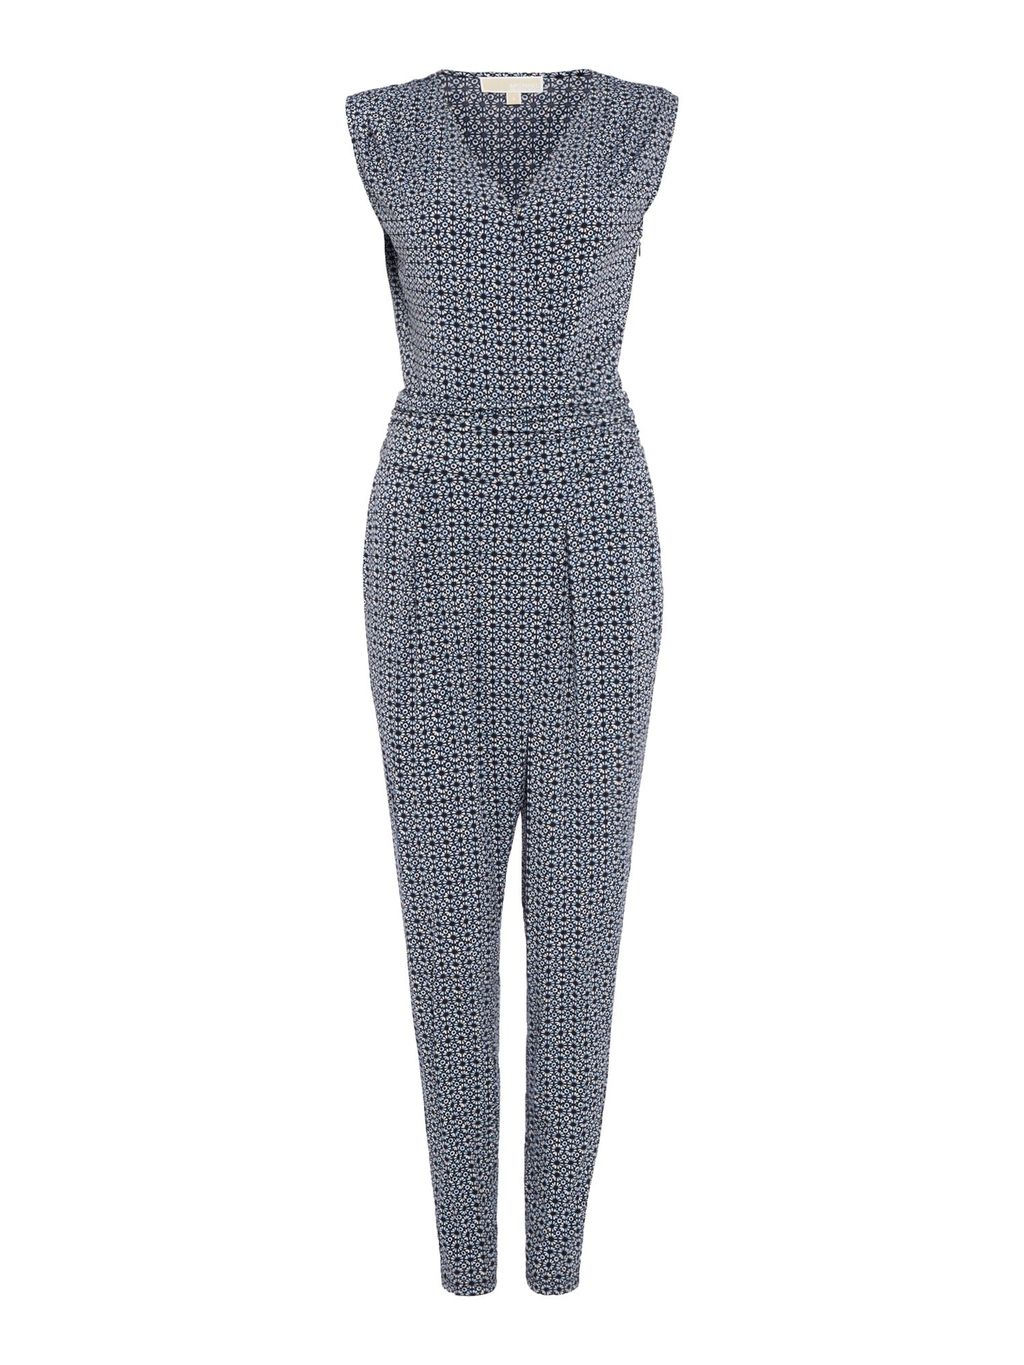 Sleeveless Wrap Jumpsuit, Navy - length: standard; neckline: v-neck; fit: tailored/fitted; sleeve style: sleeveless; predominant colour: navy; occasions: evening; fibres: polyester/polyamide - stretch; sleeve length: sleeveless; texture group: crepes; style: jumpsuit; pattern type: fabric; pattern size: standard; pattern: patterned/print; season: s/s 2016; wardrobe: event